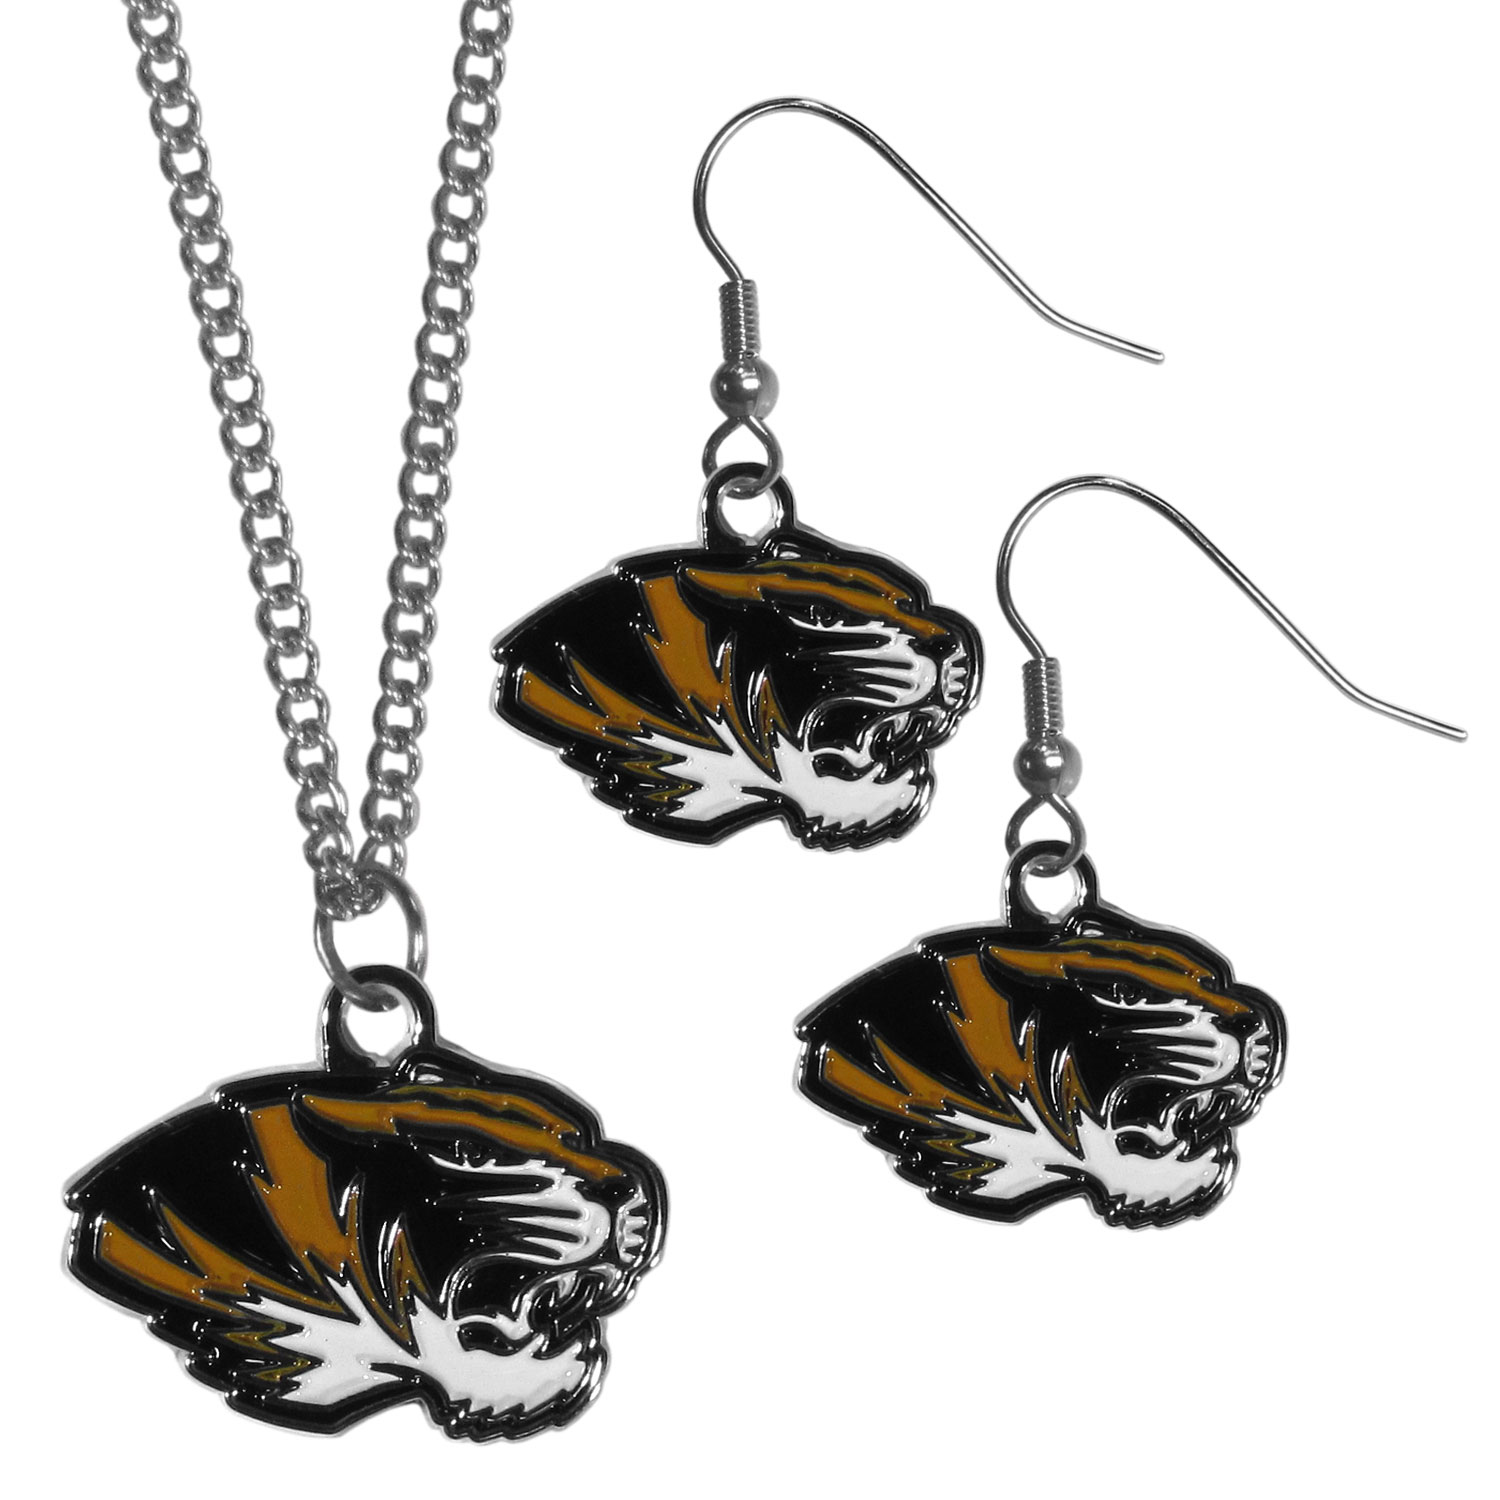 Missouri Tigers Dangle Earrings and Chain Necklace Set - This classic jewelry set contains are most popular Missouri Tigers dangle earrings and 22 inch chain necklace. The trendy, dangle earrings are lightweight and feature a fully cast metal team charm with enameled team colors. The matching necklace completes this fashion forward combo and is a spirited set that is perfect for game day but nice enough for everyday.